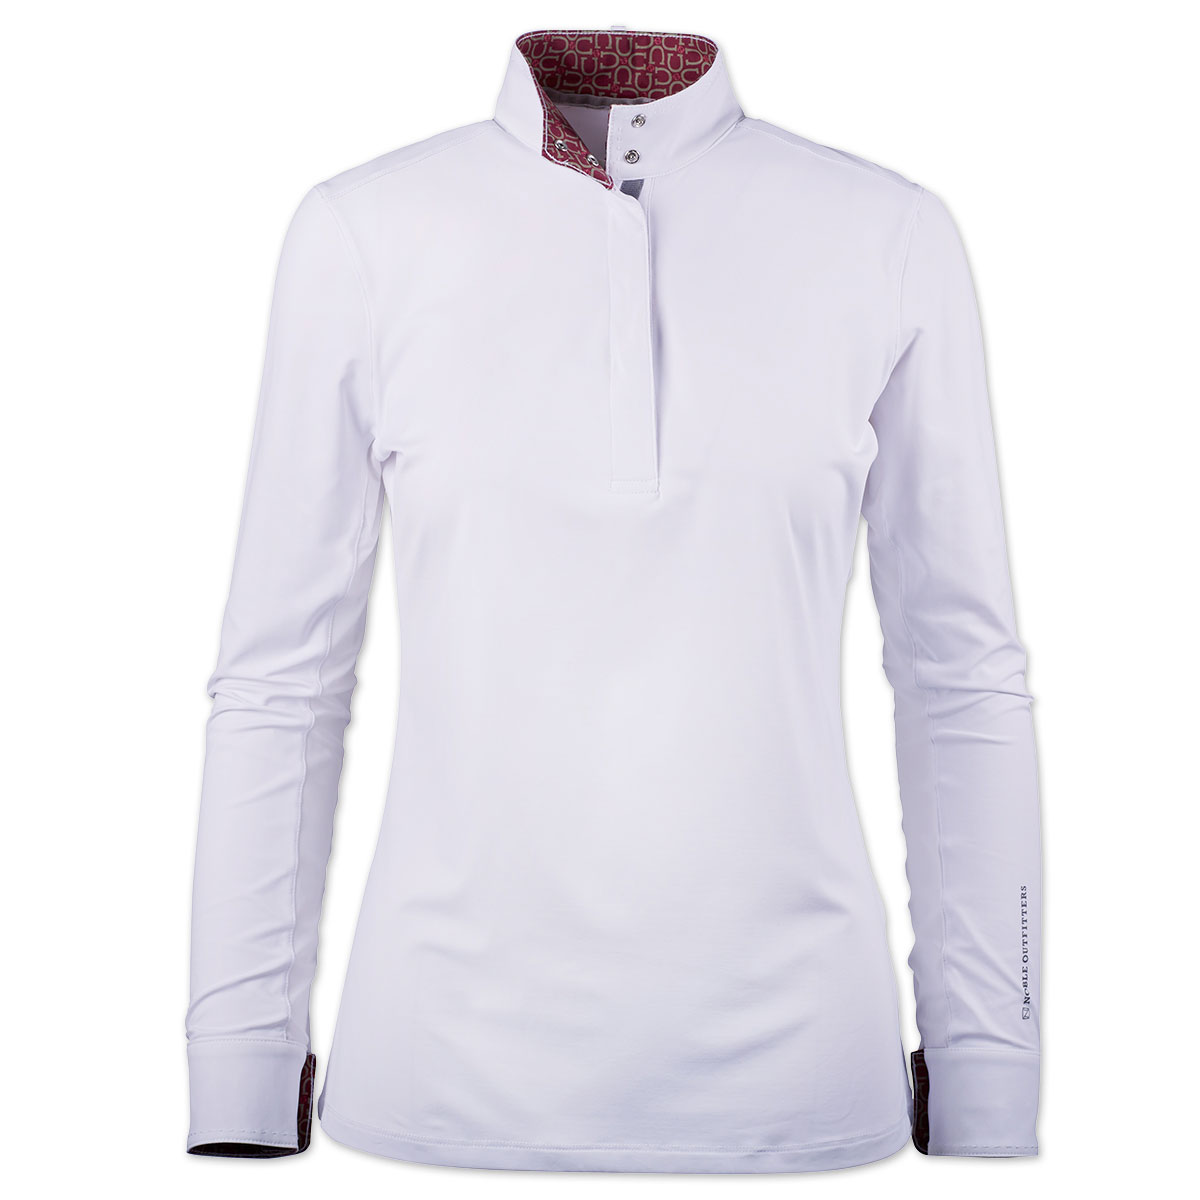 Noble Outfitters Allison Longsleeve Show Shirt